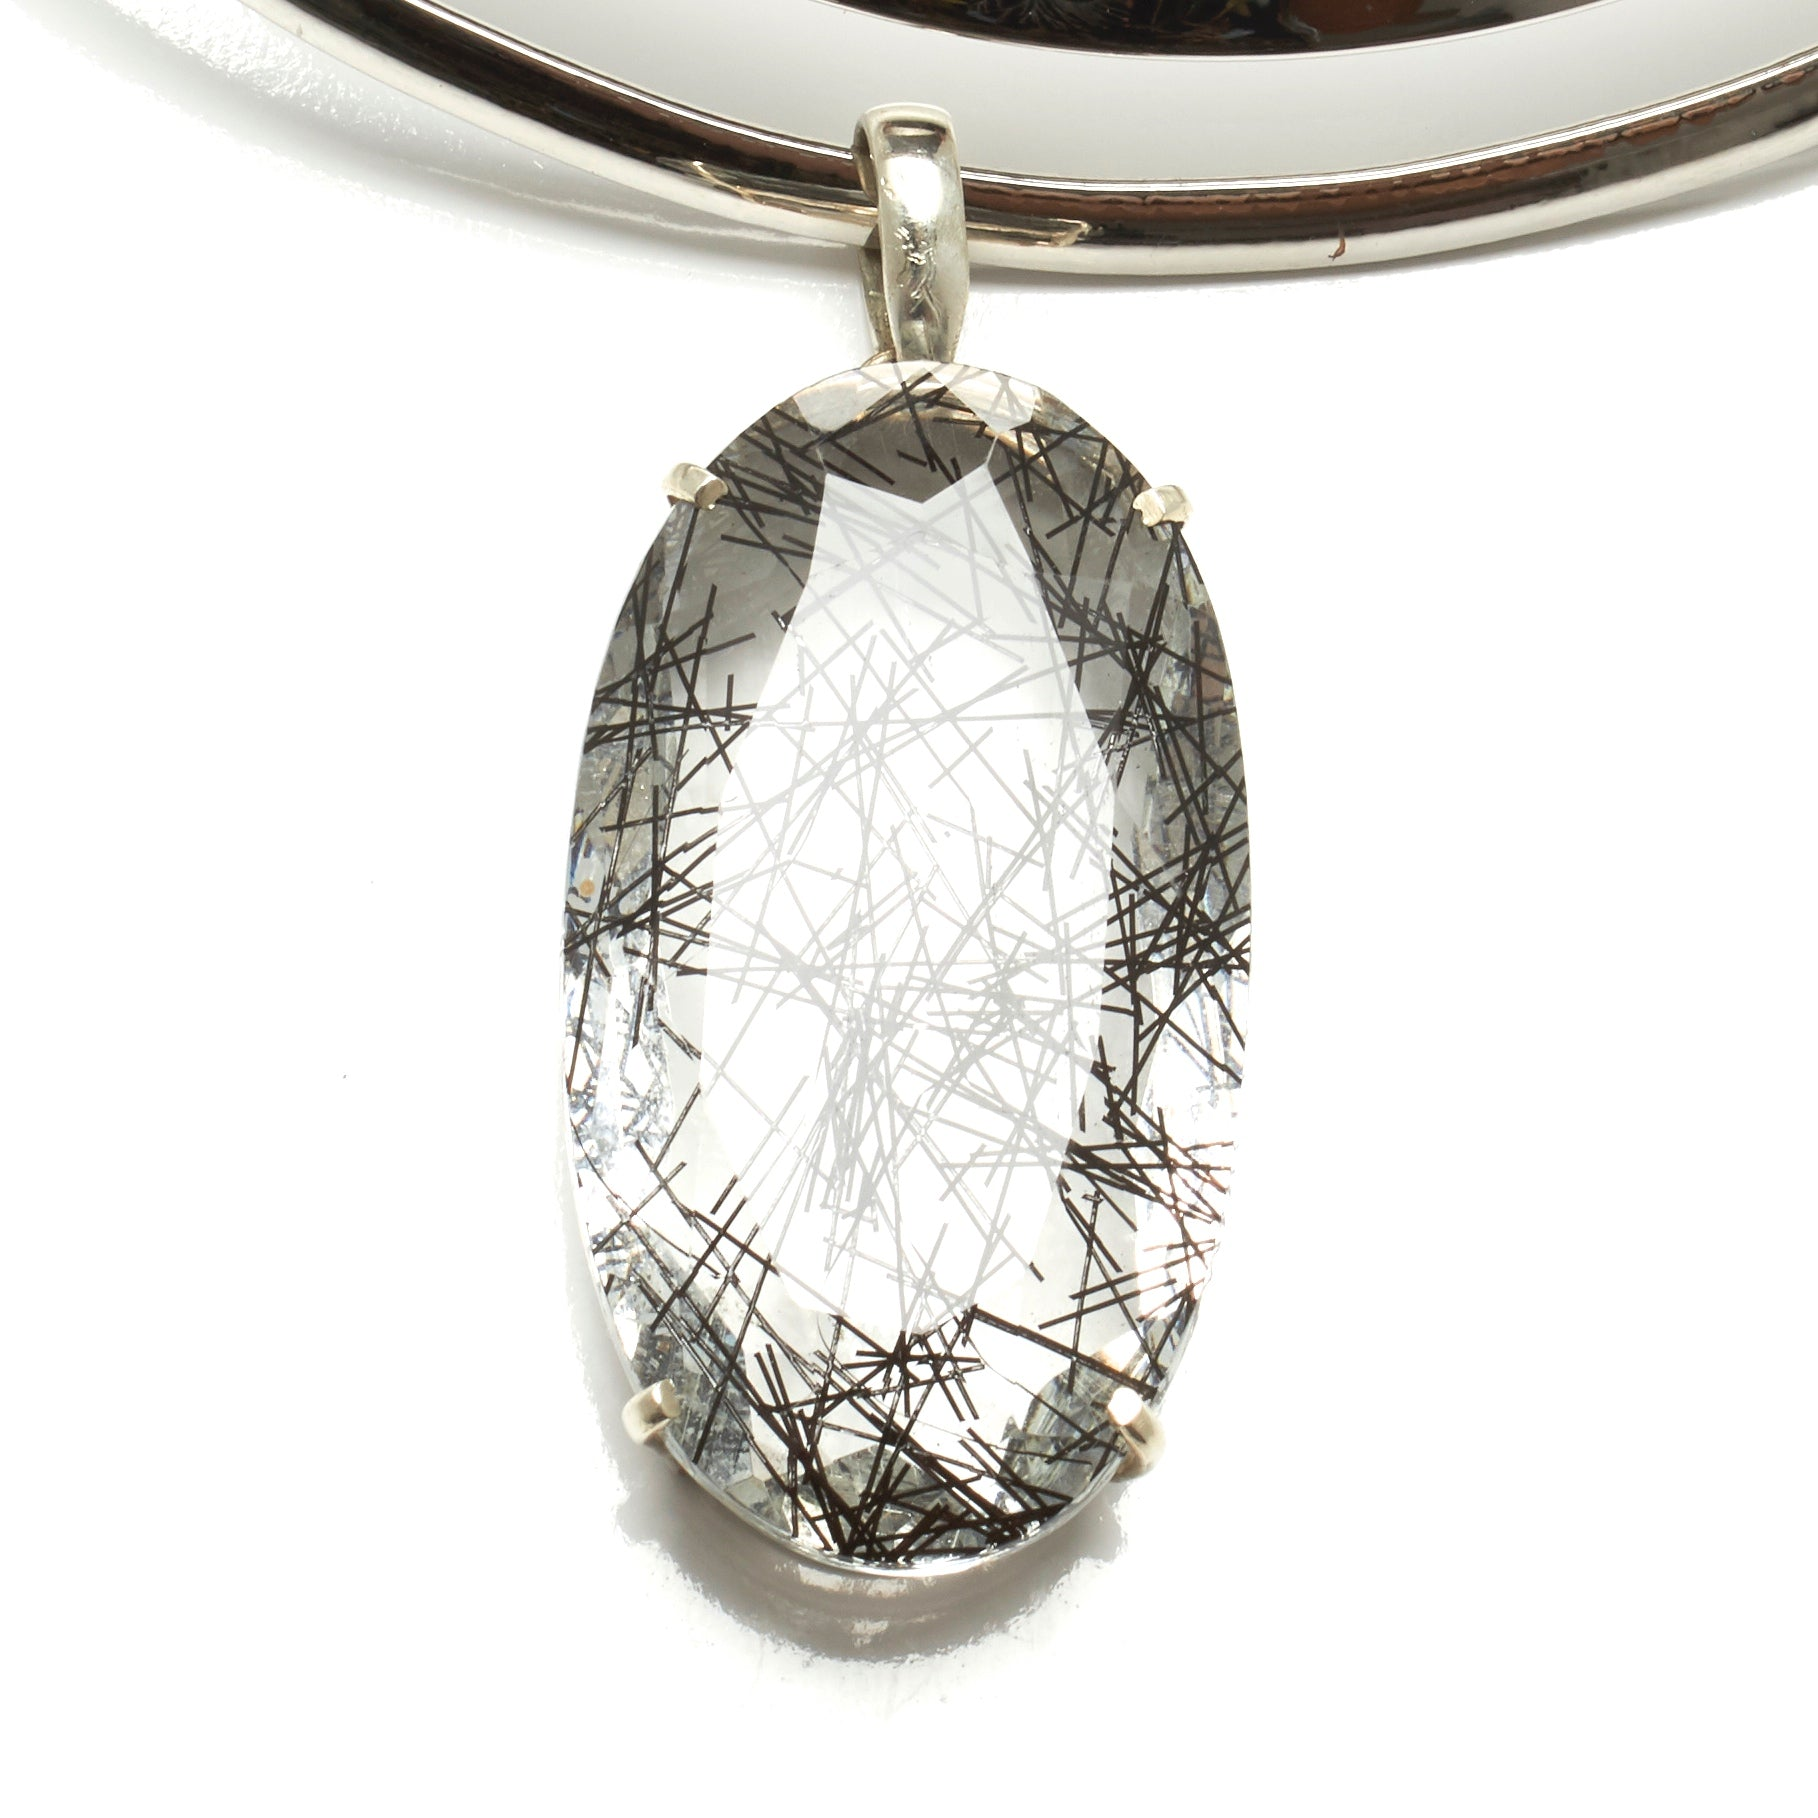 THICK TORQUE NECKLACE WITH LARGE TOURMALINATED QUARTZ PENDENT. BY NYET JEWELRY